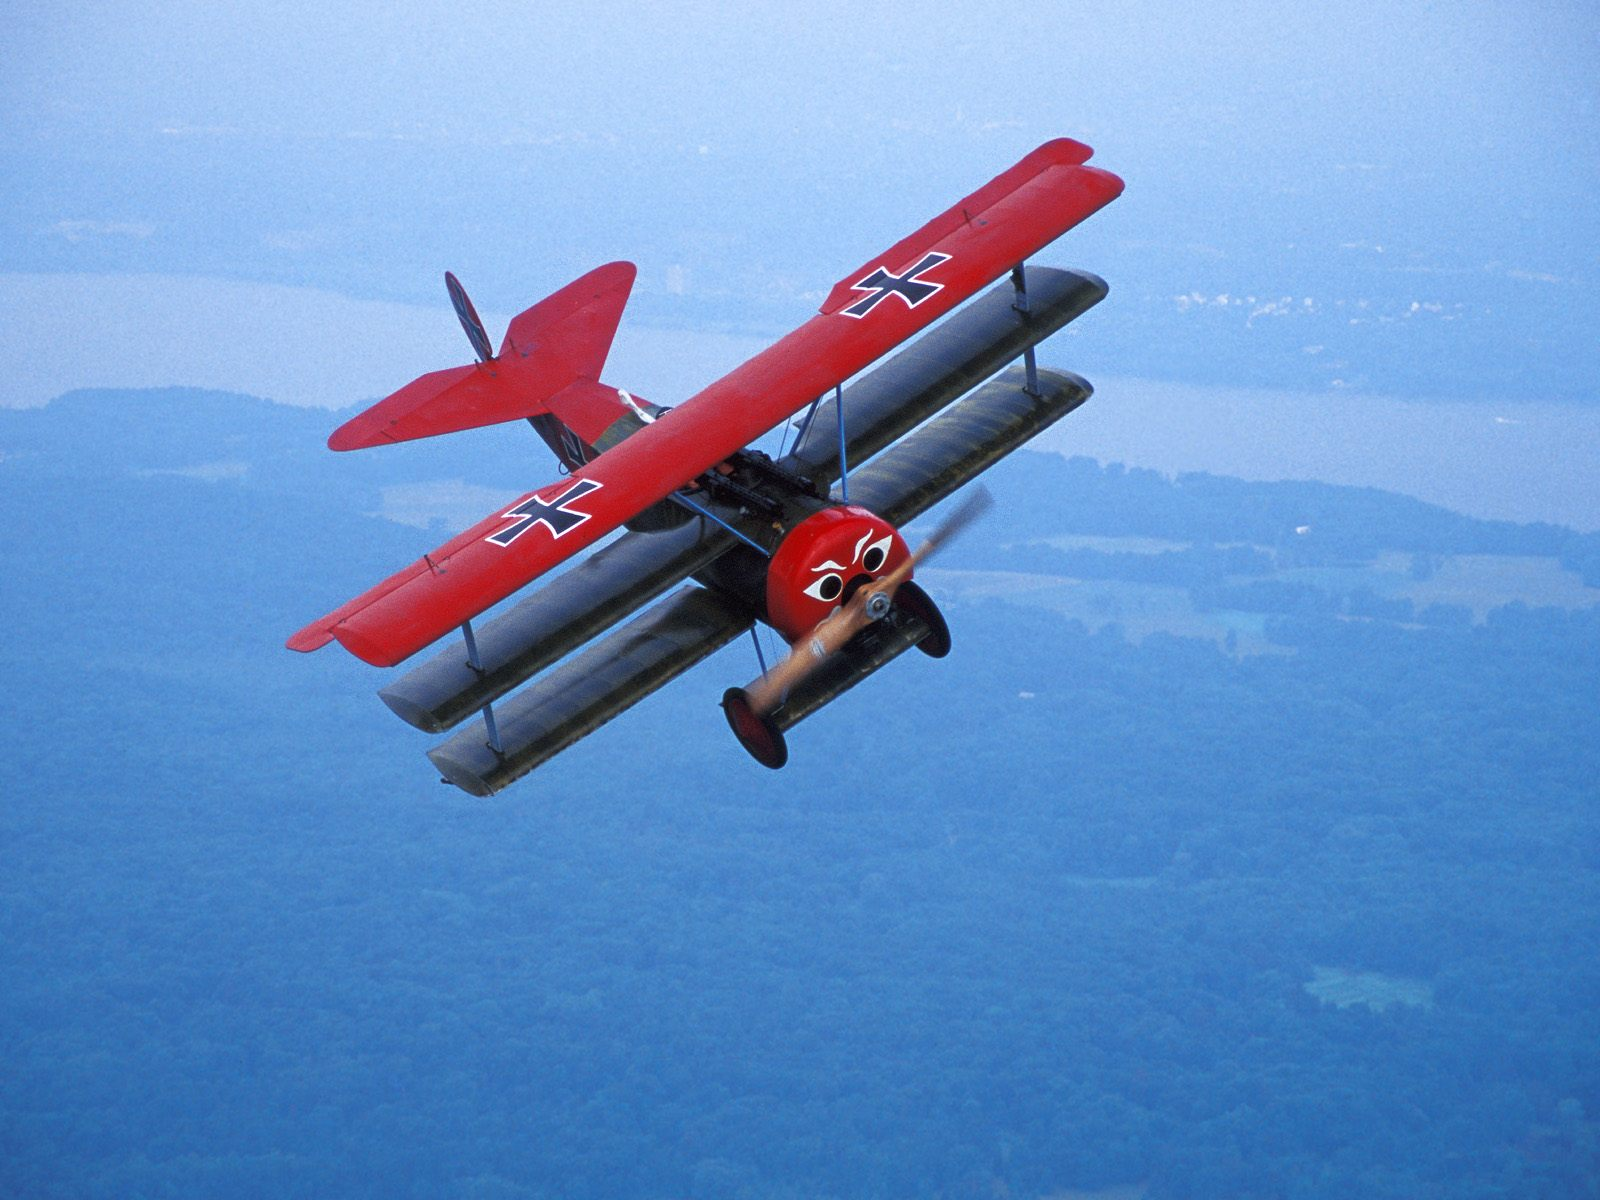 Best Hit Wallpaper Area Old Rhinebeck Fokker Aircraft